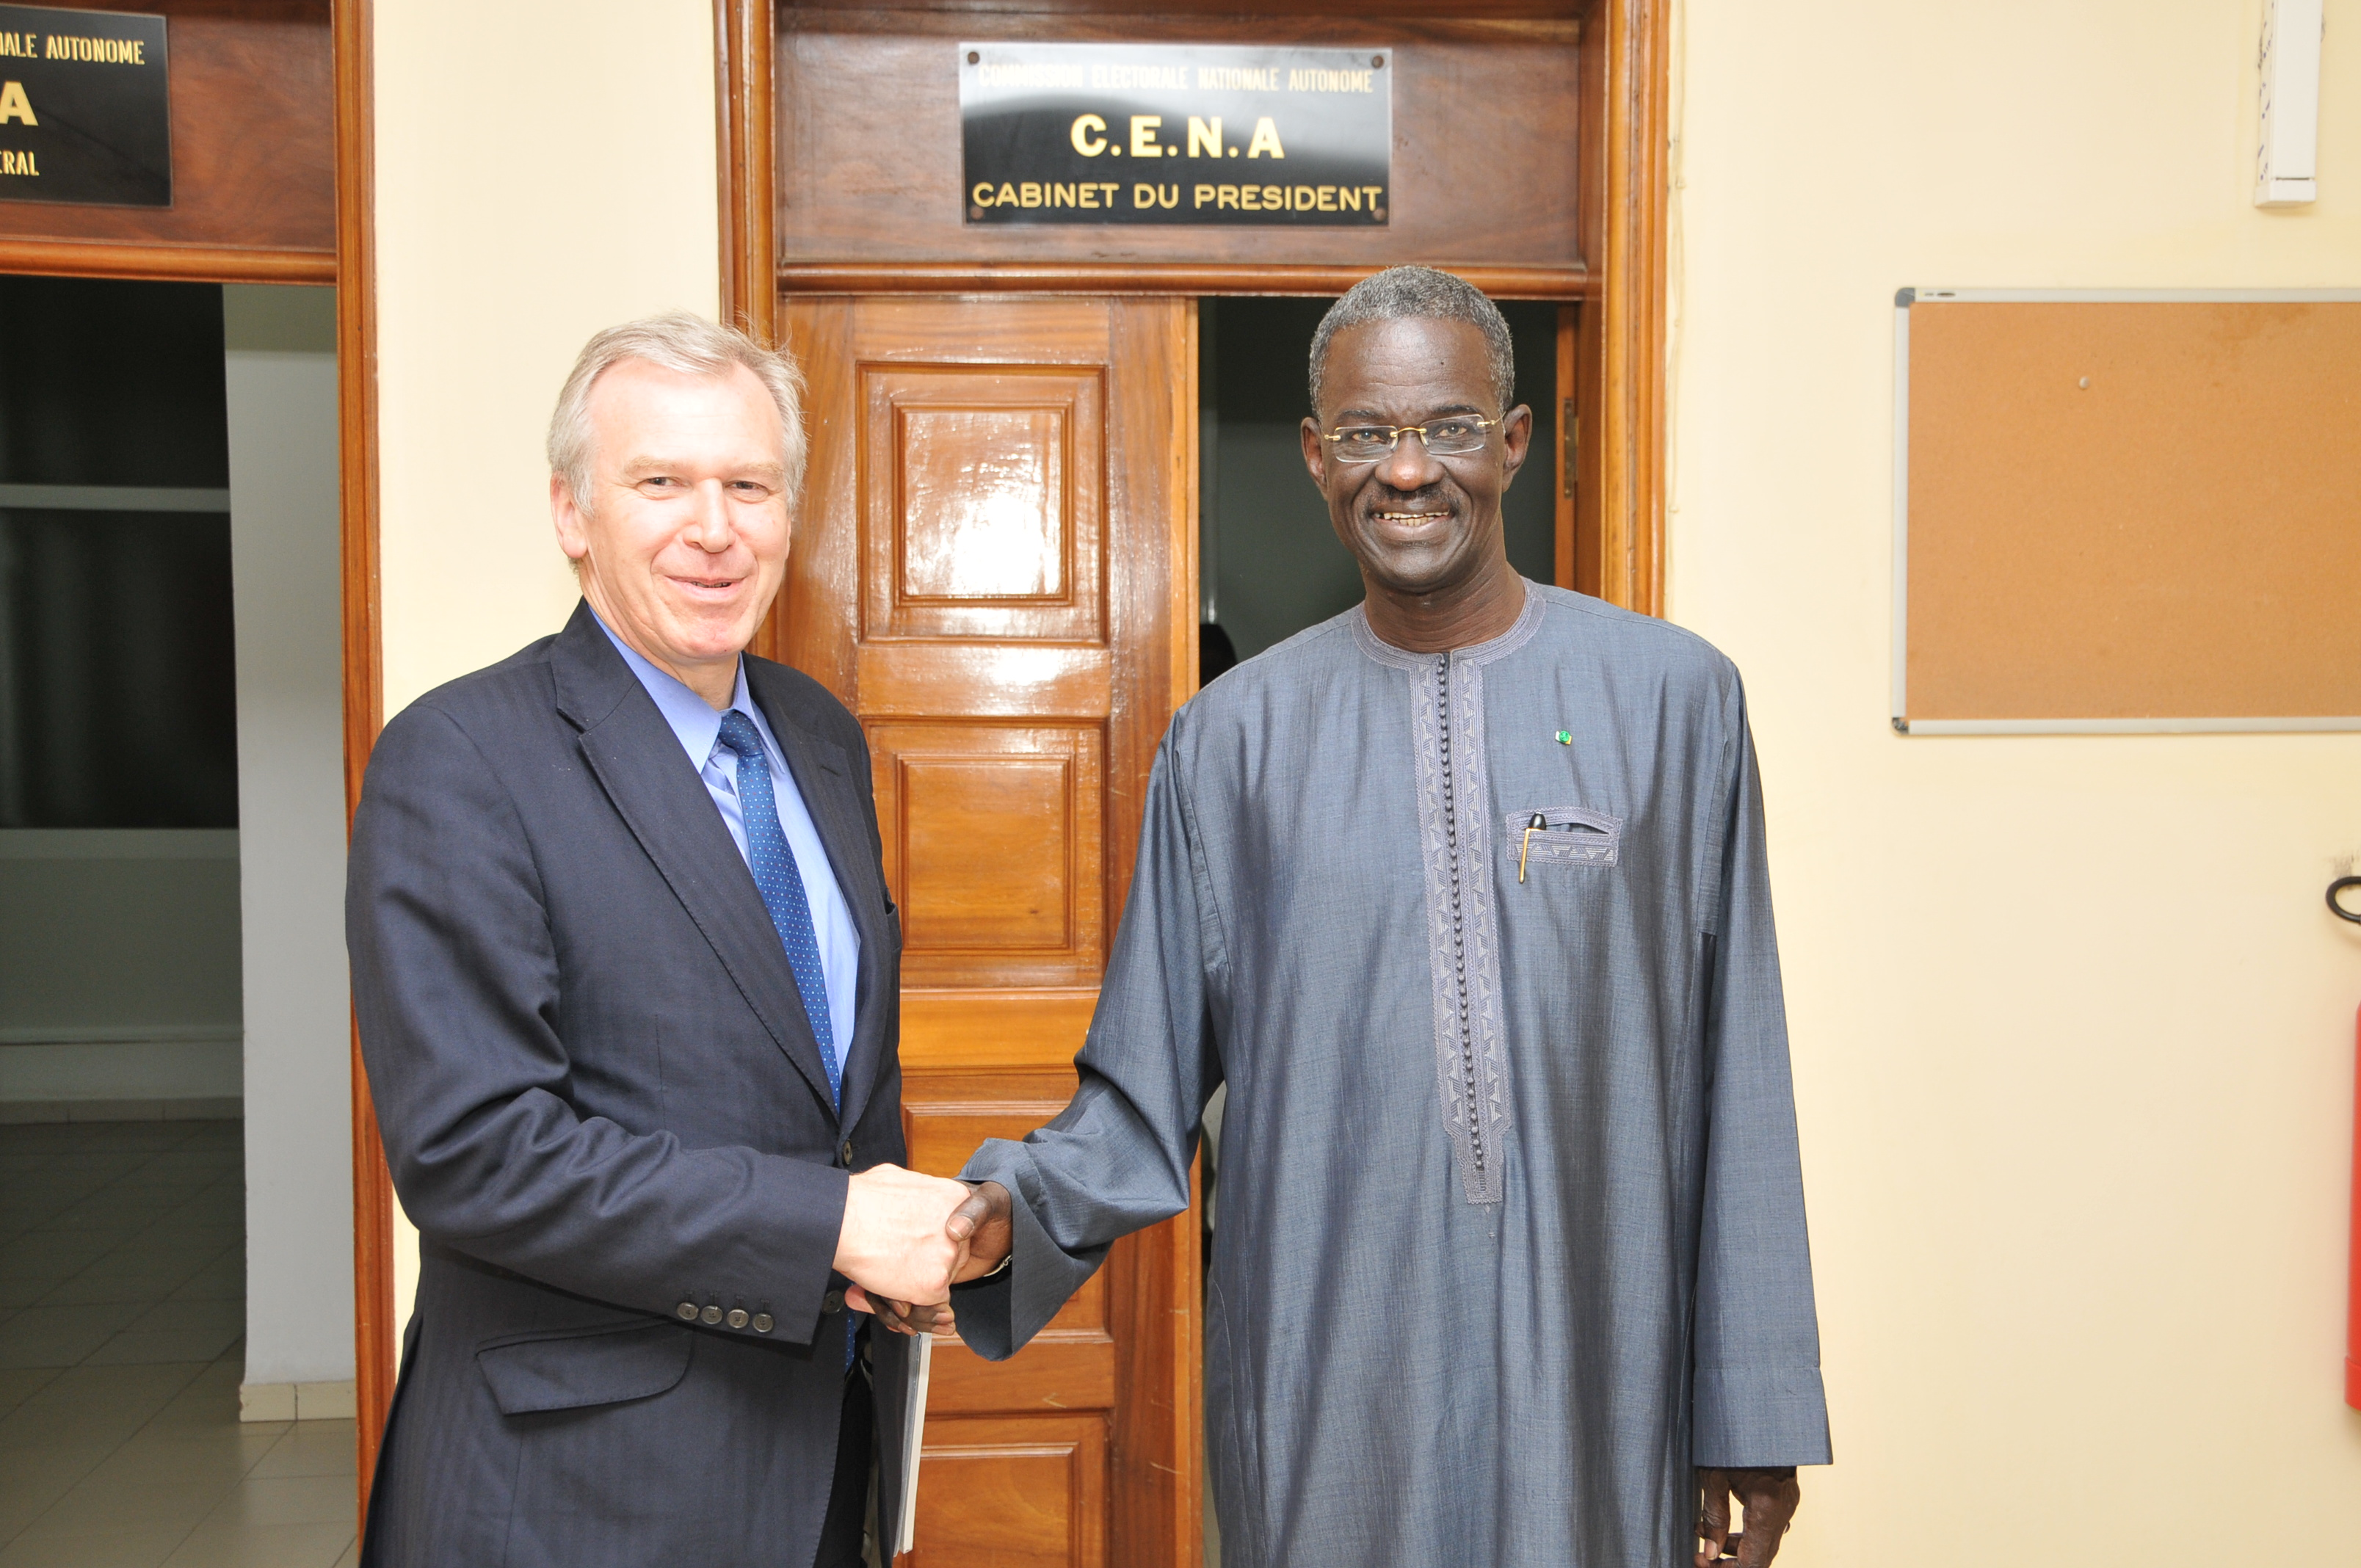 Yves Leterme with the Chairperson of the Autonomous National Electoral Commission of Senegal, Doudou Ndir.